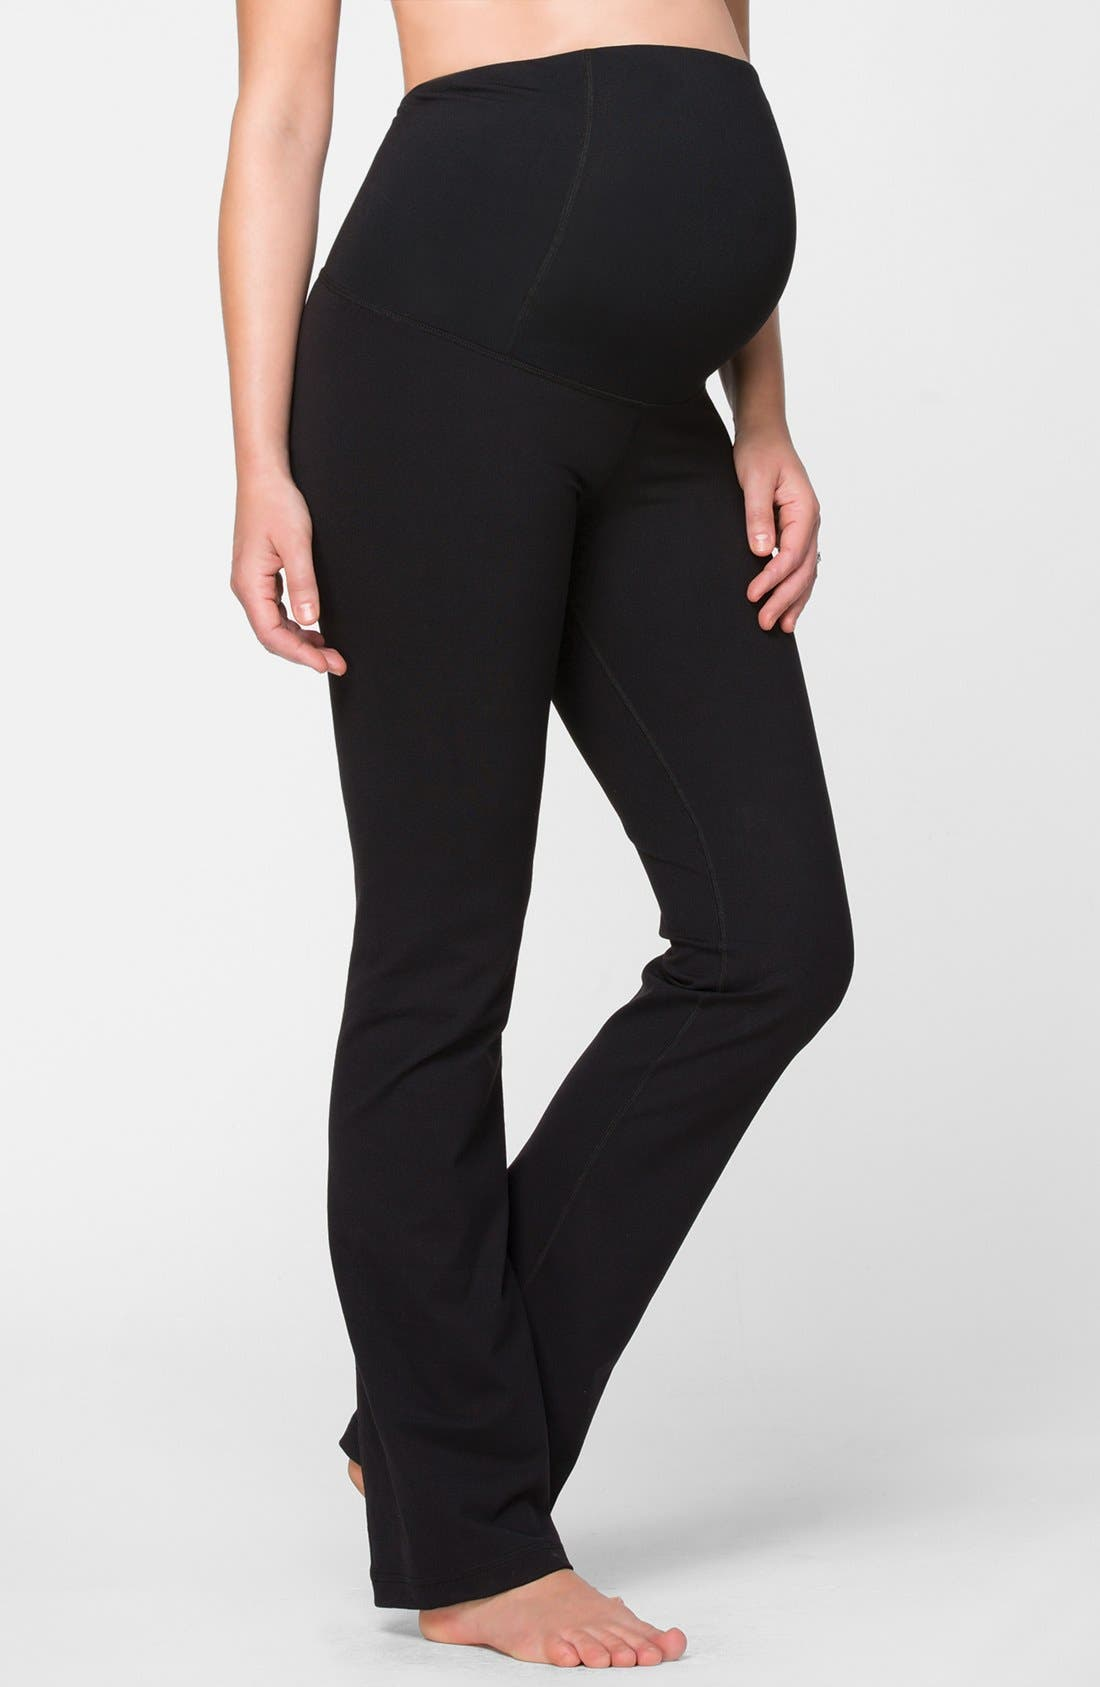 Active Maternity Pants with Crossover Panel,                         Main,                         color, Jet Black